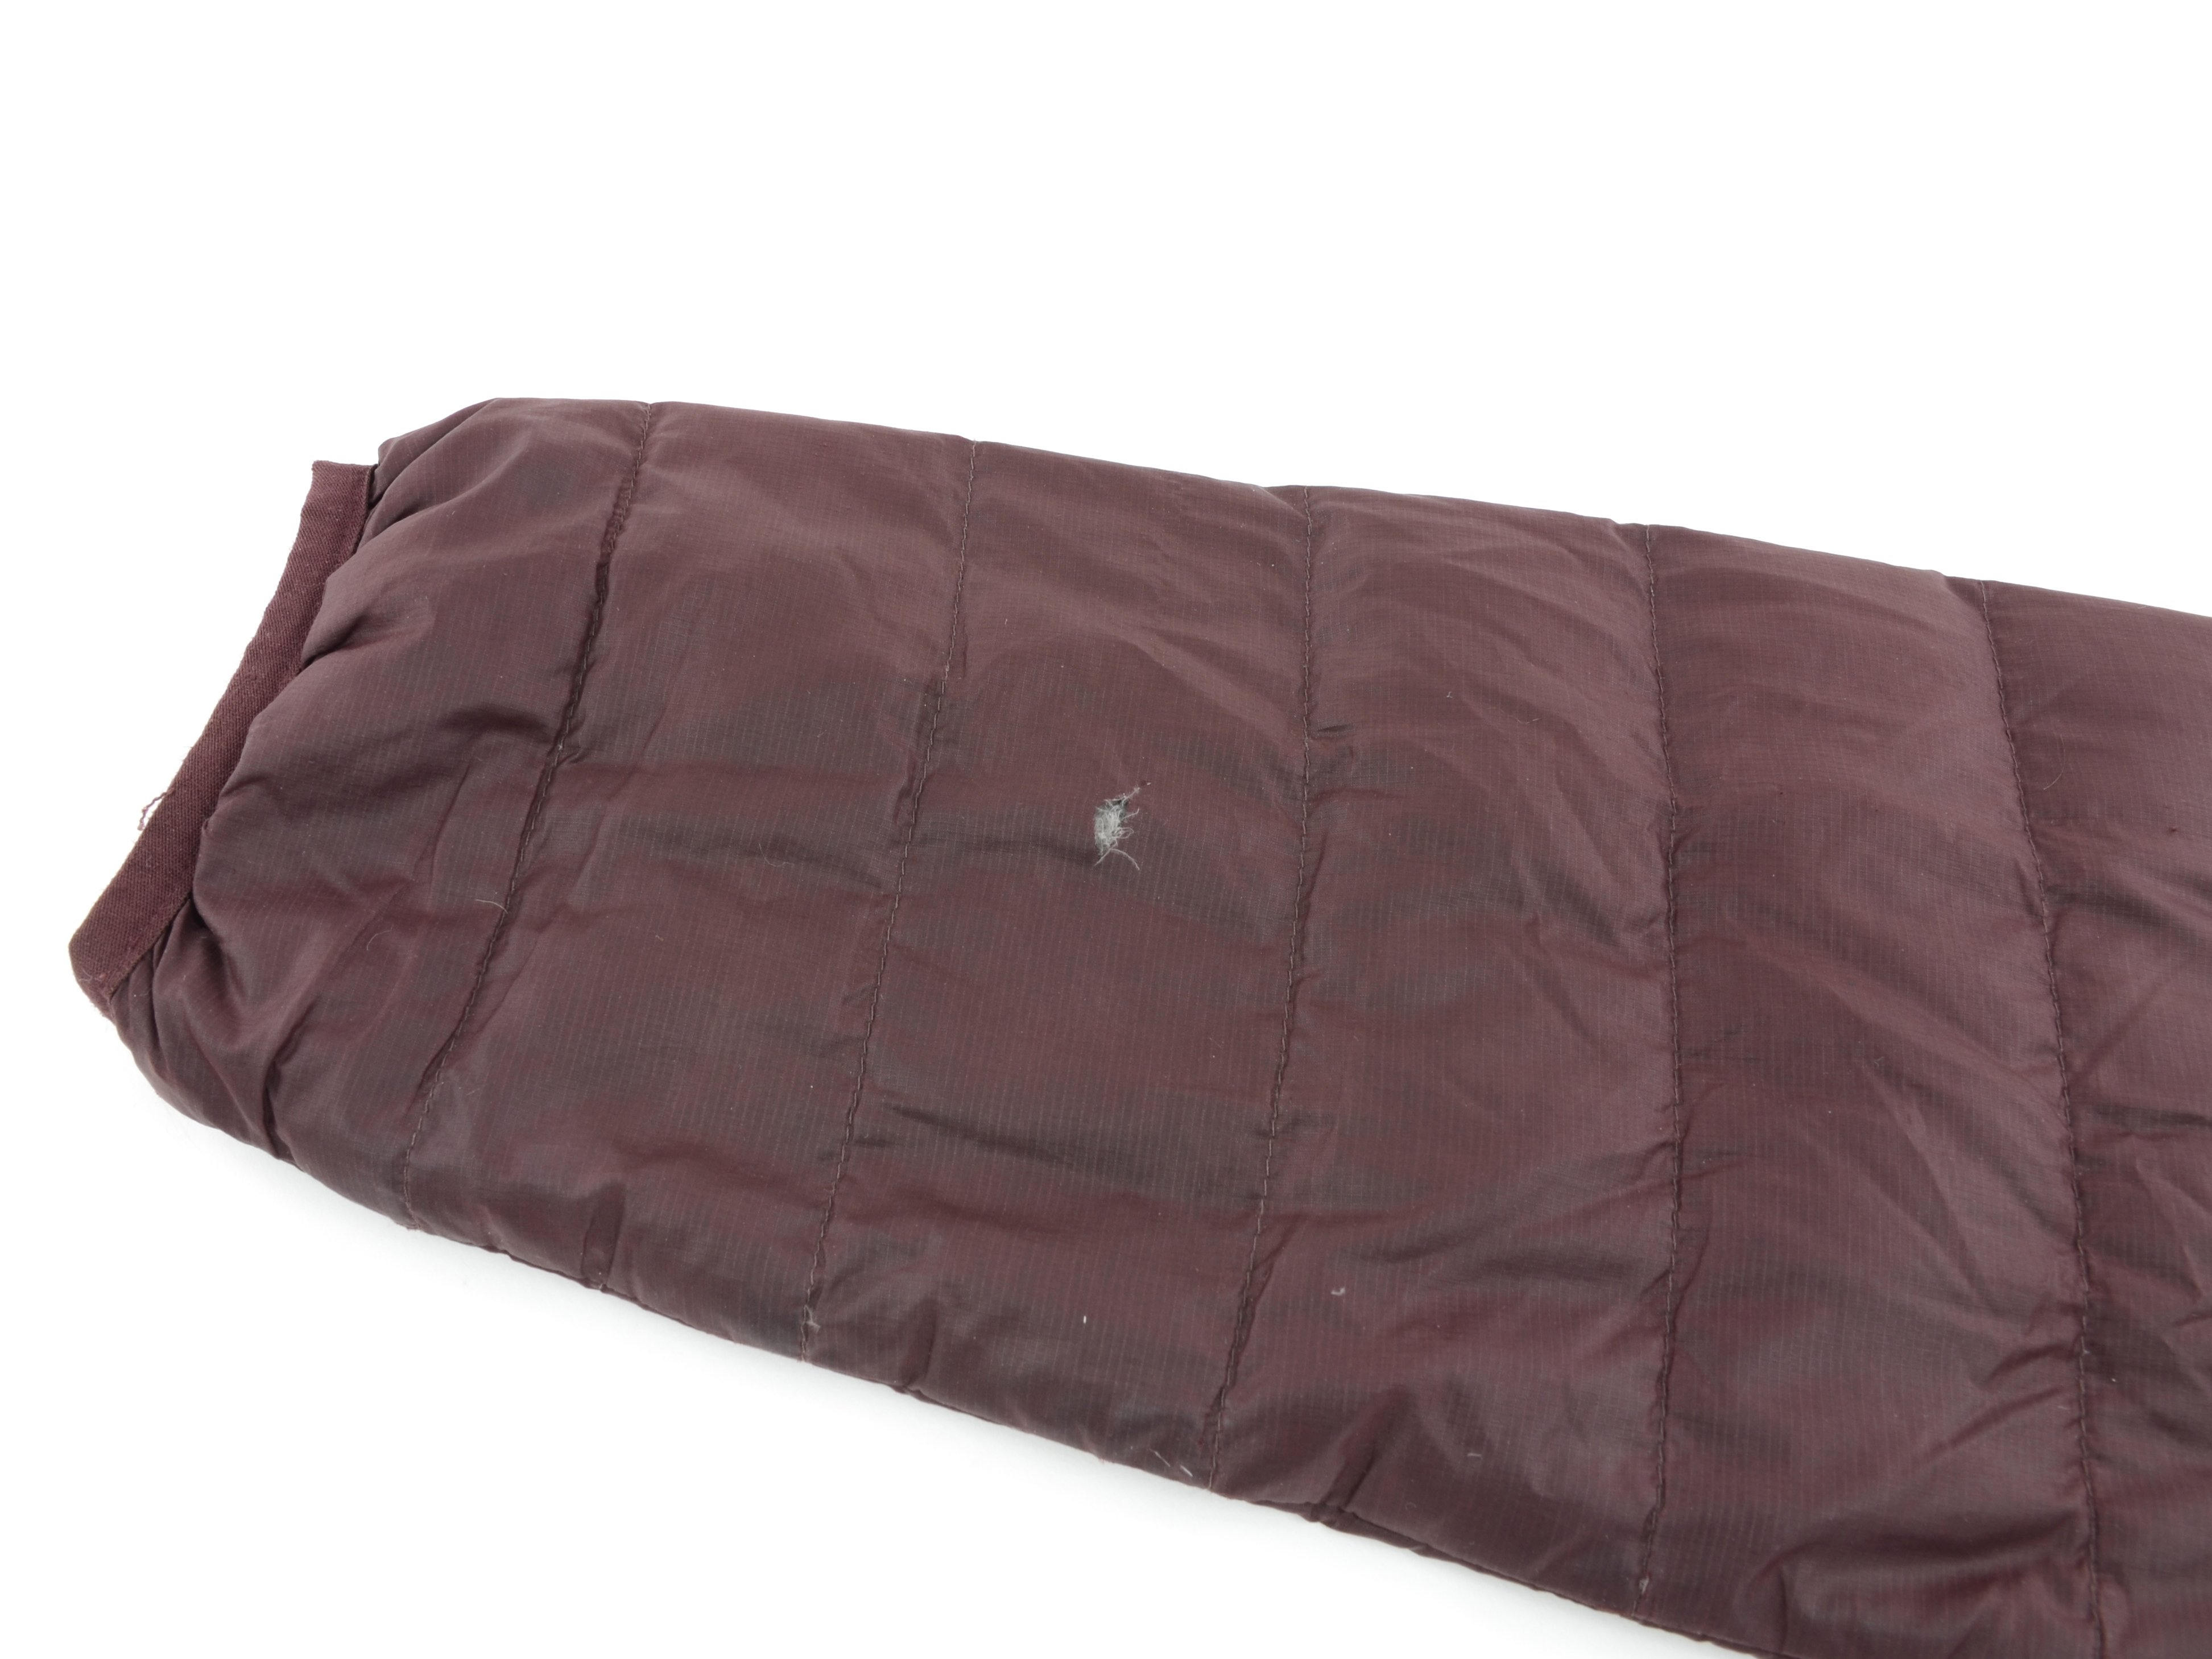 9eefb4add Patch a Patagonia Down Jacket with Repair Tape - iFixit Repair Guide